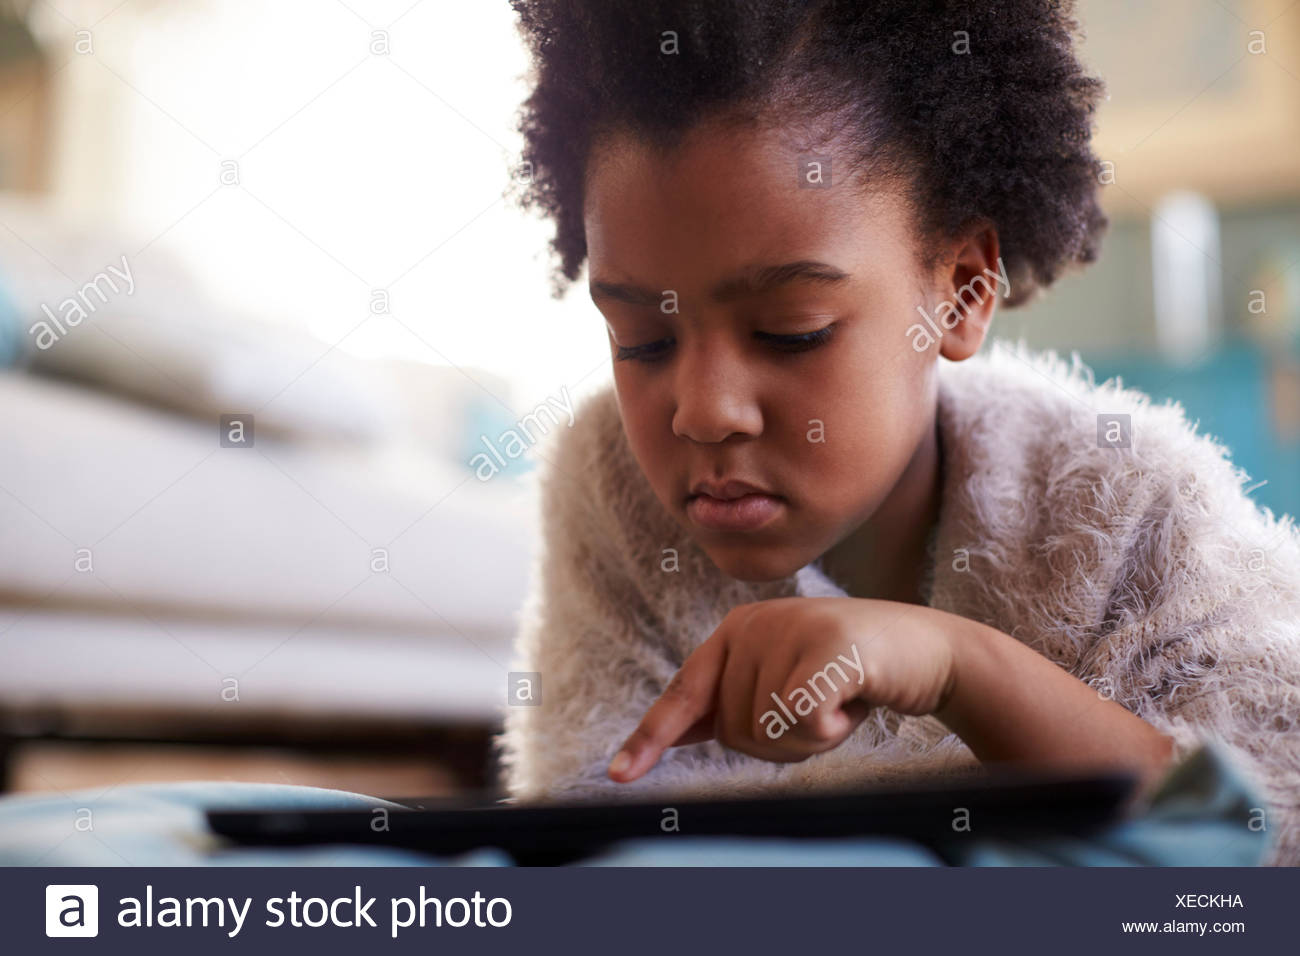 Young Girl Using Digital Tablet At Home - Stock Image